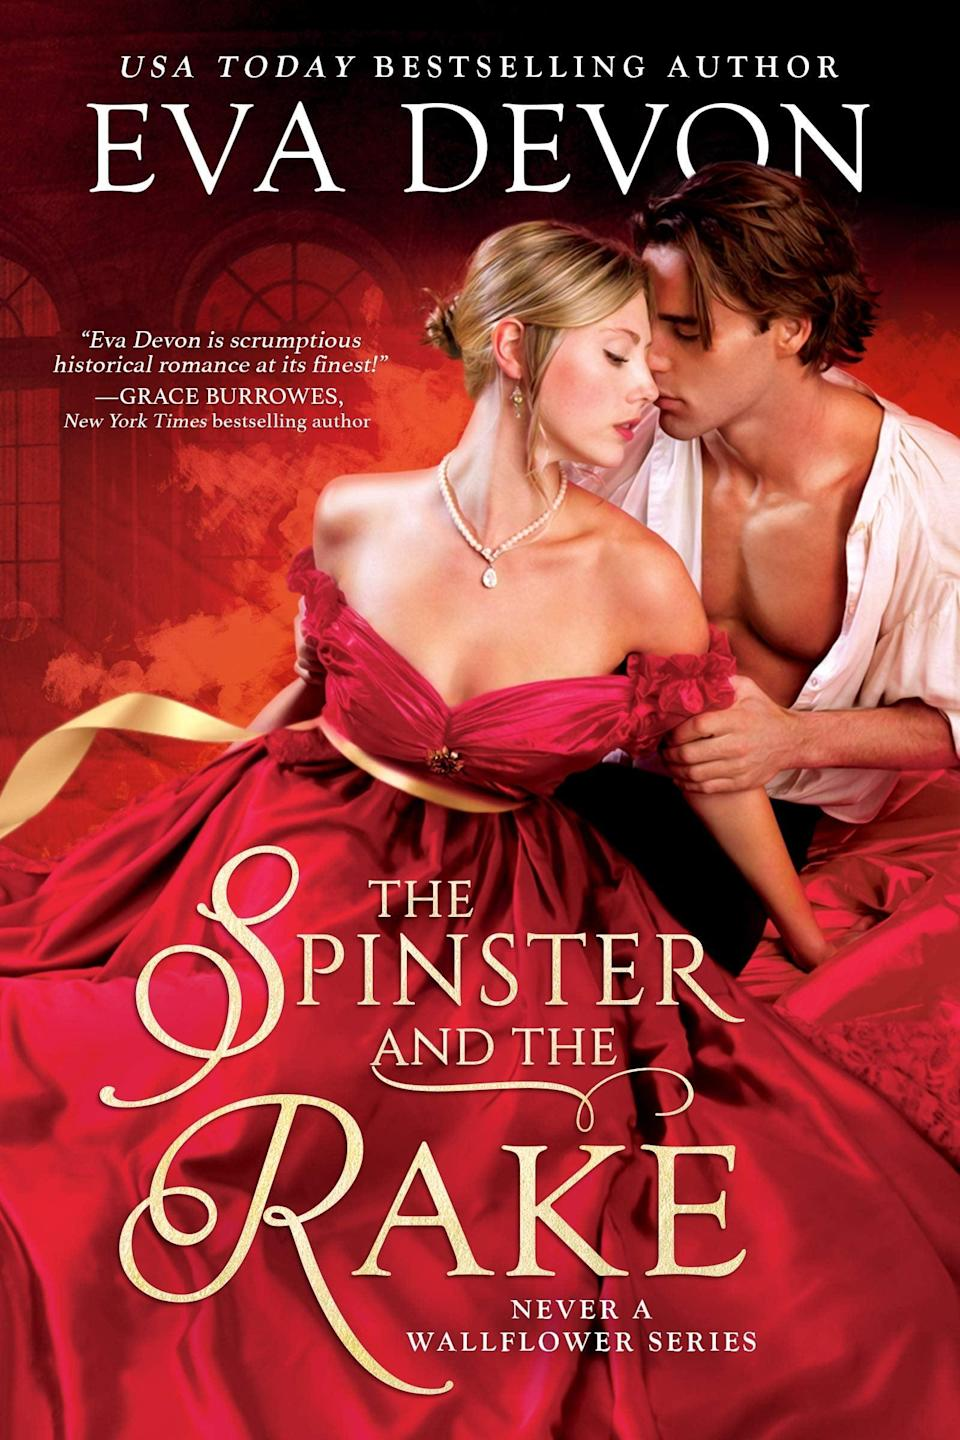 <p>Thanks to <strong>Bridgerton</strong>, TV fans are buzzing about sexy rakes and daring ladies, but romance fans have long known that historical romances are an absolutely divine treat. But just in case you needed reminding, Eva Devon's <span><strong>The Spinster and the Rake</strong></span> is here to put a sexy twist on <strong>My Fair Lady</strong> this February. </p> <p><em>Out Feb. 9</em></p>